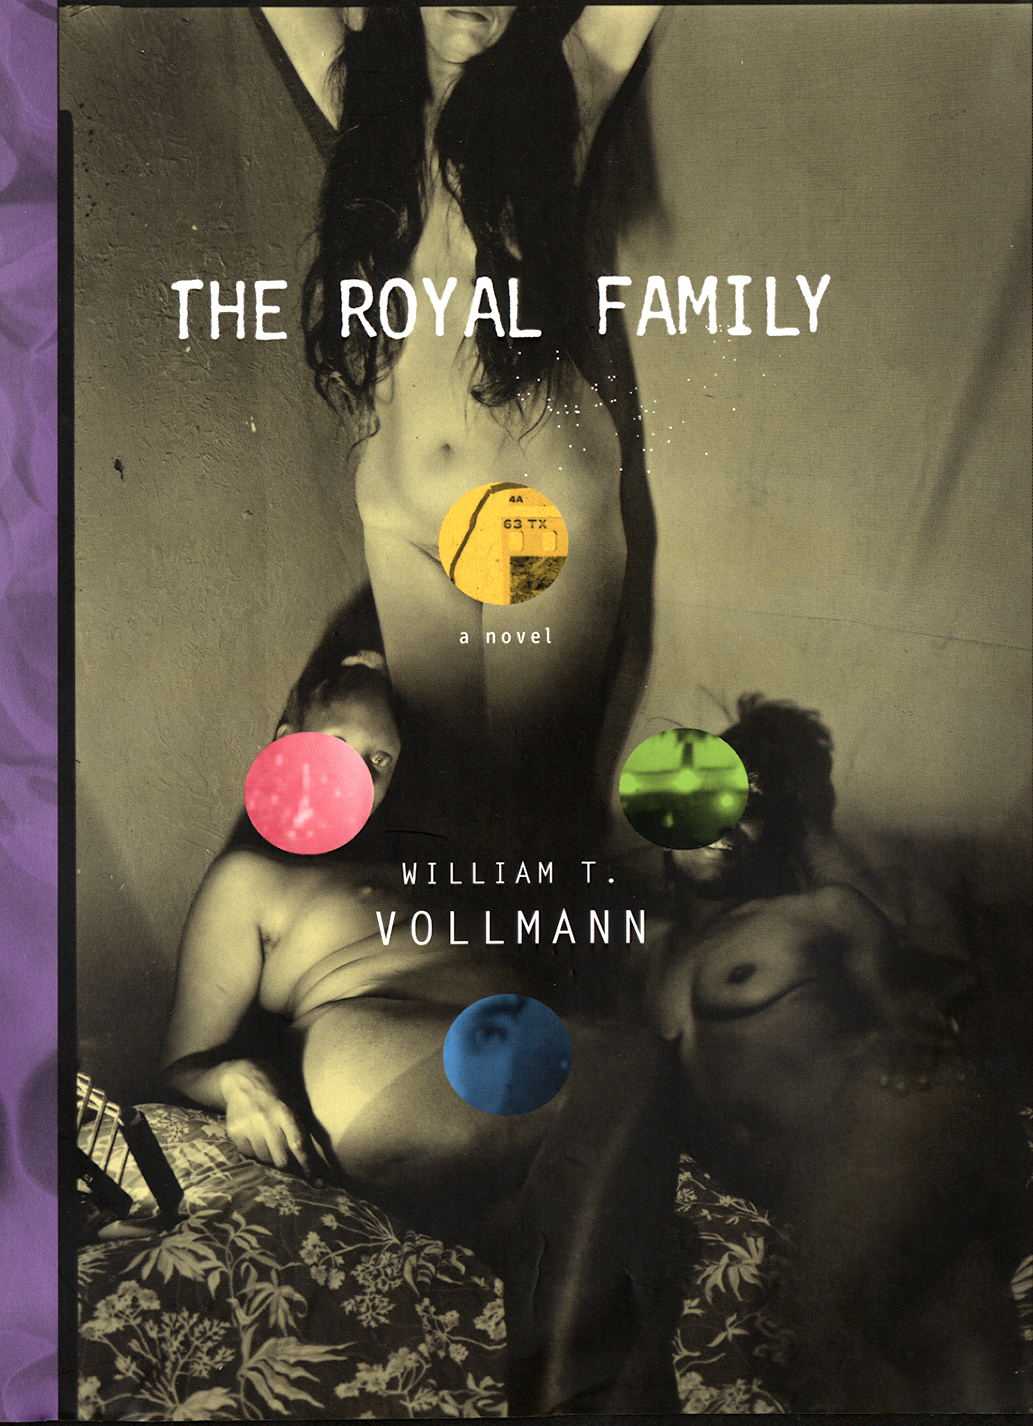 The Royal Family - Portada original